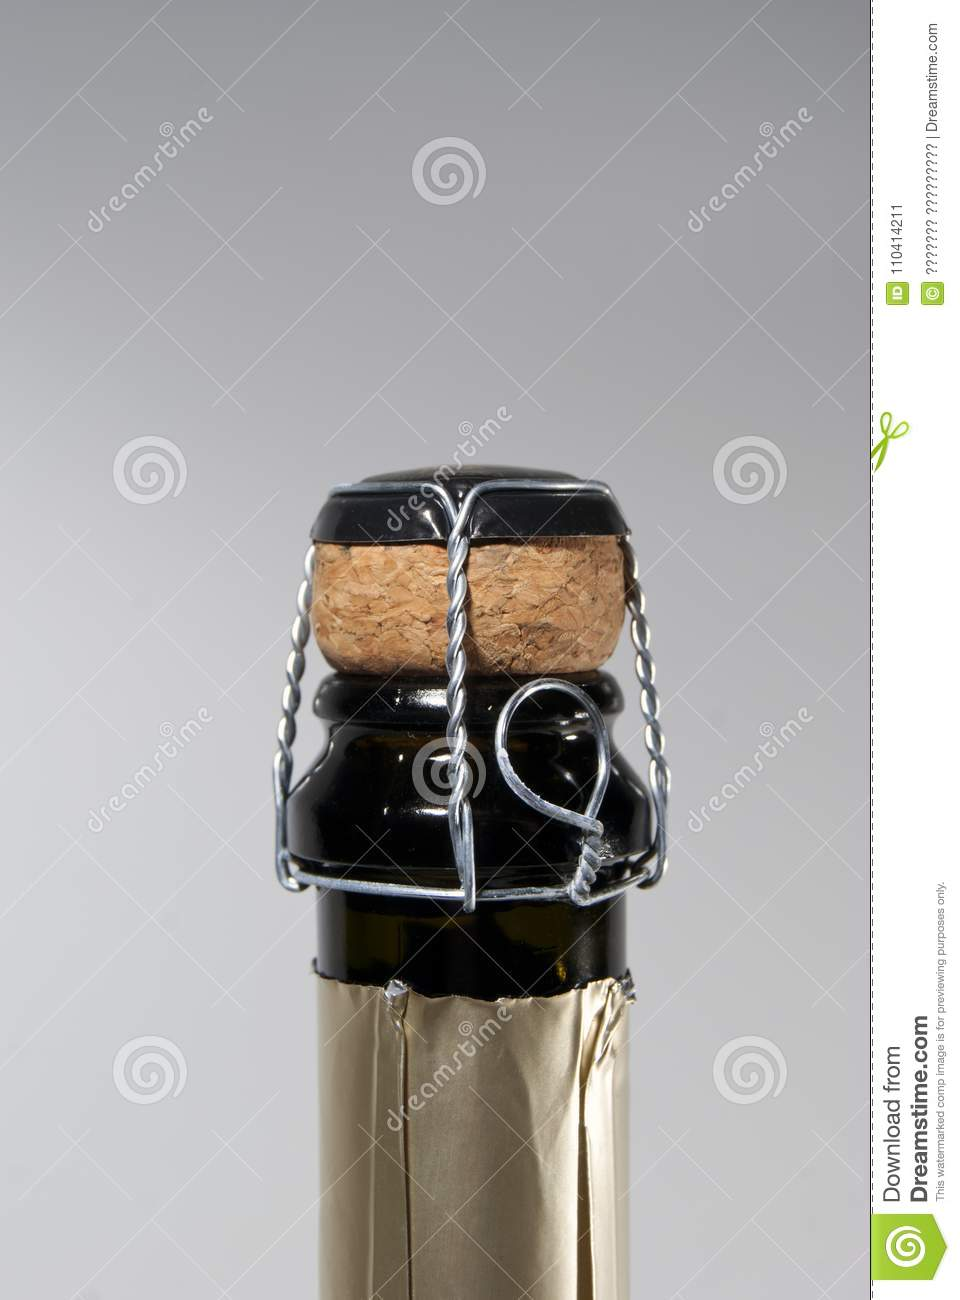 Cork and muselet closure atop a bottle of sparkling wine, unopened